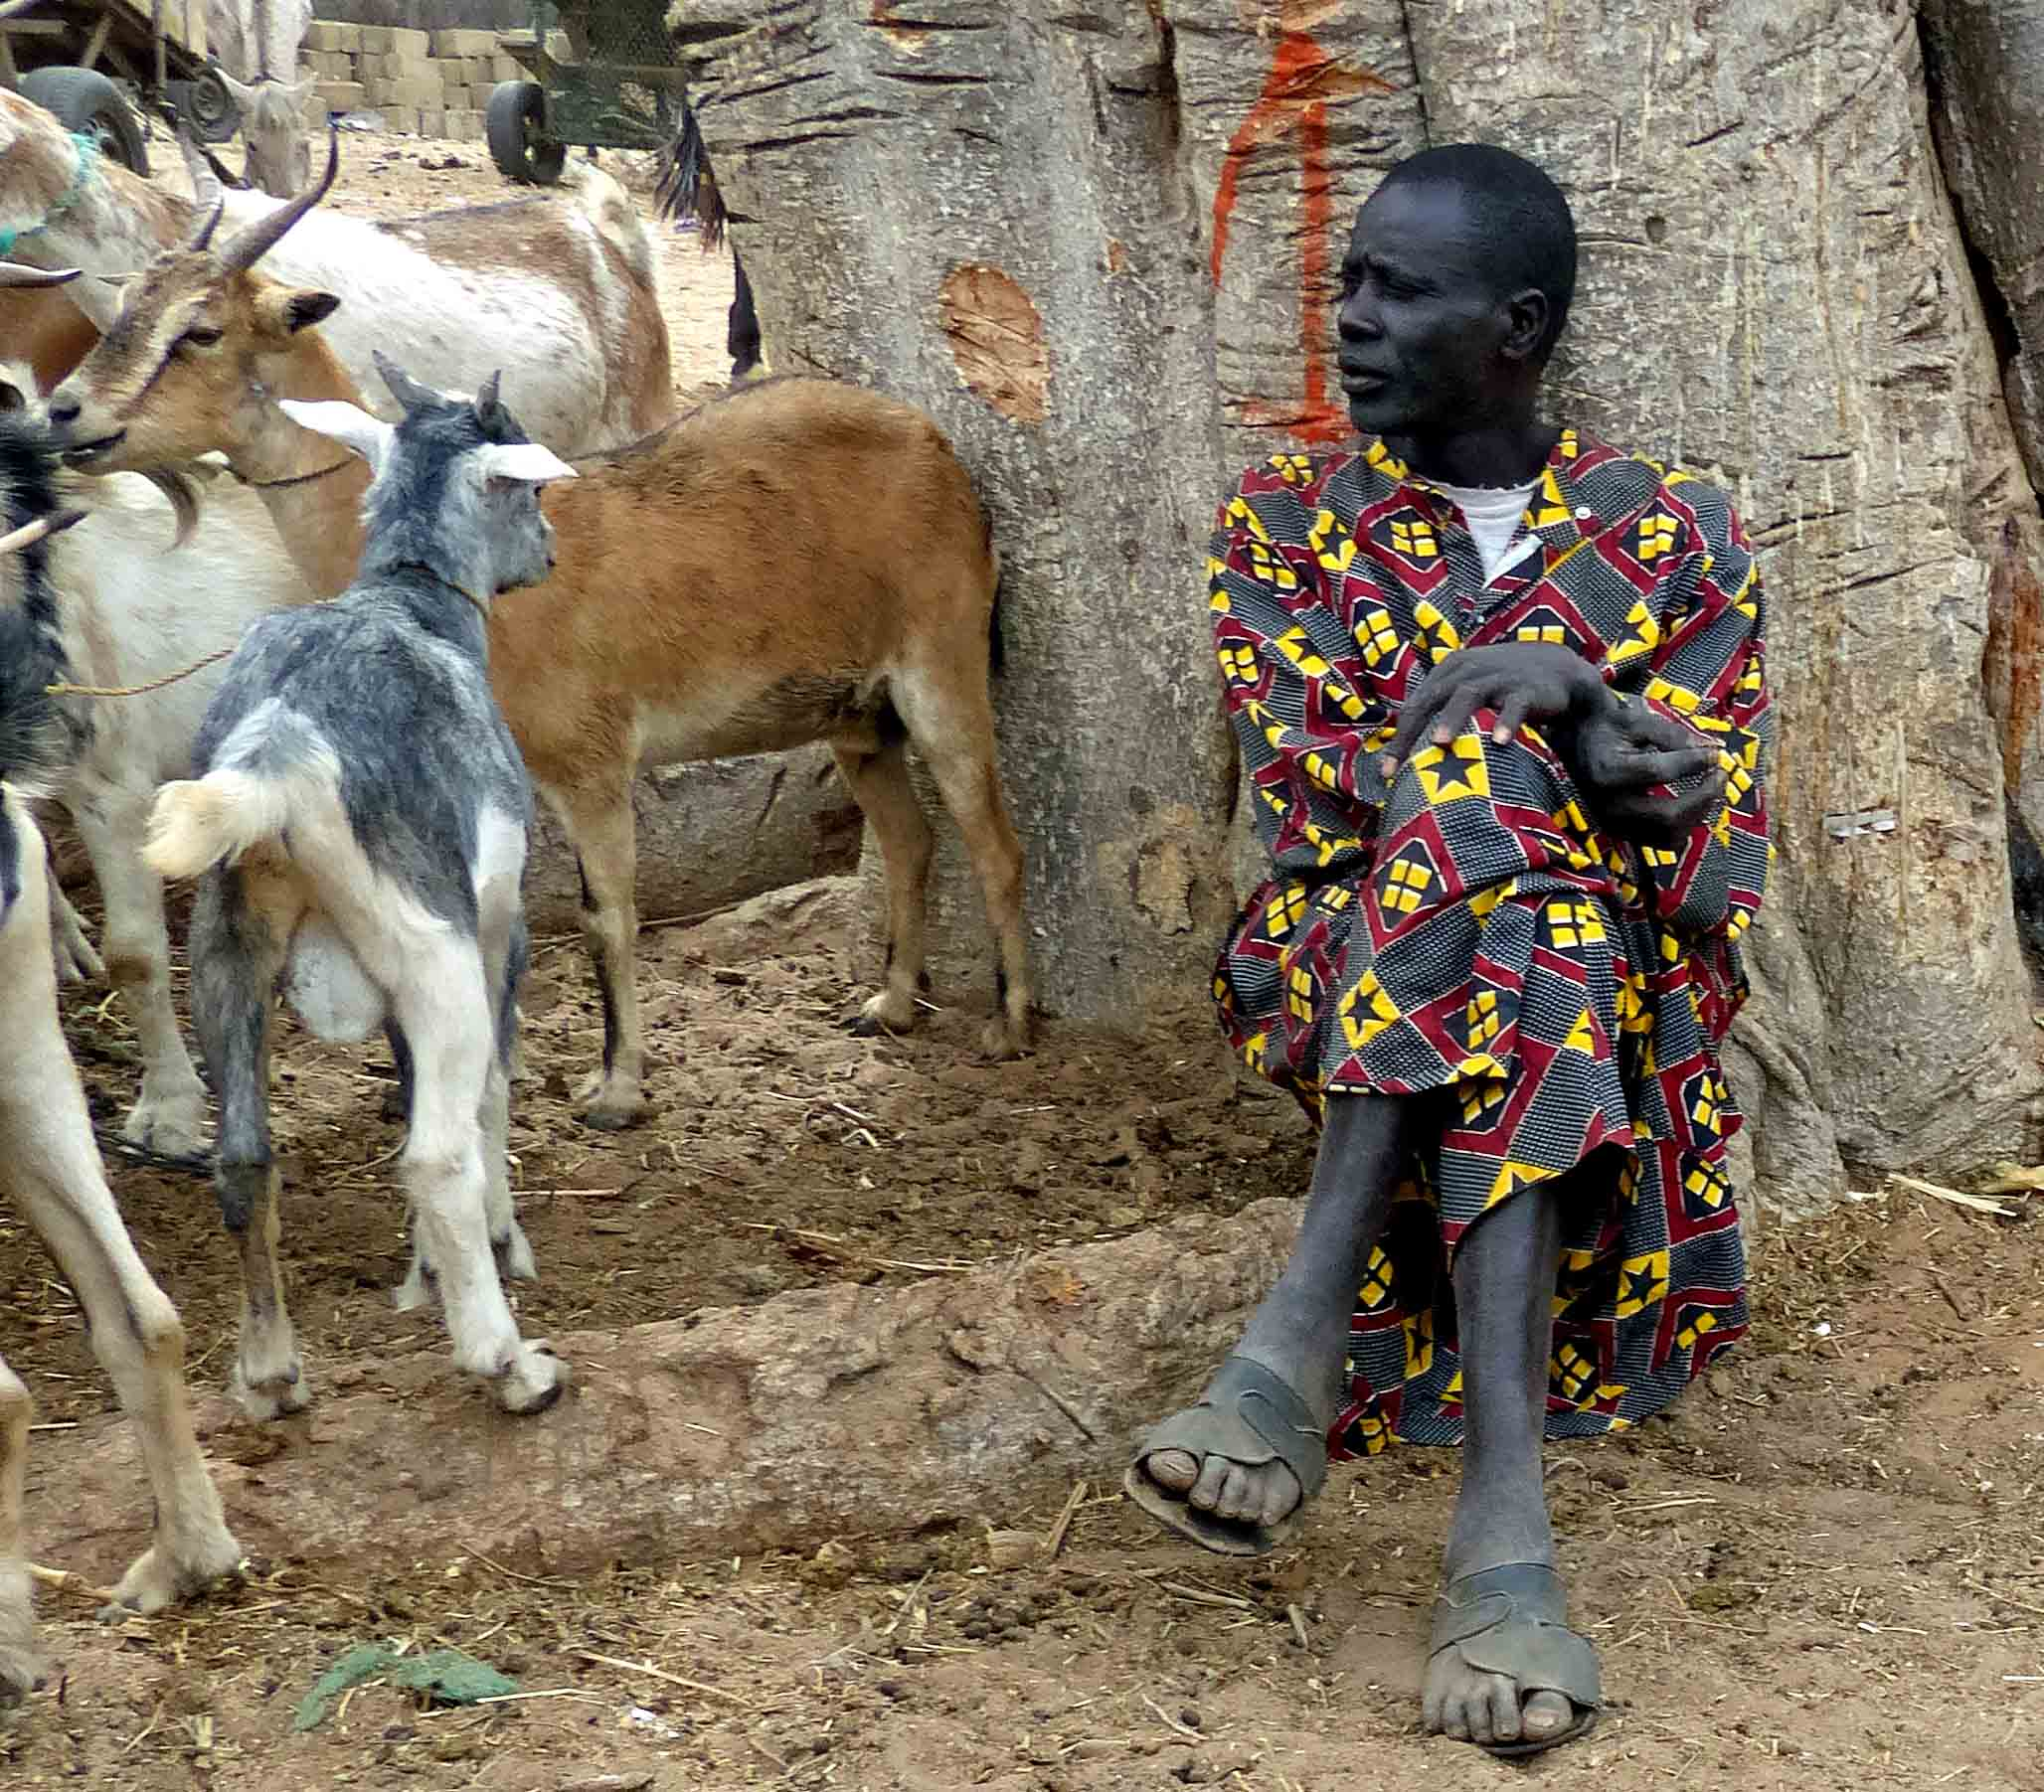 Man leaning against a tree with goats